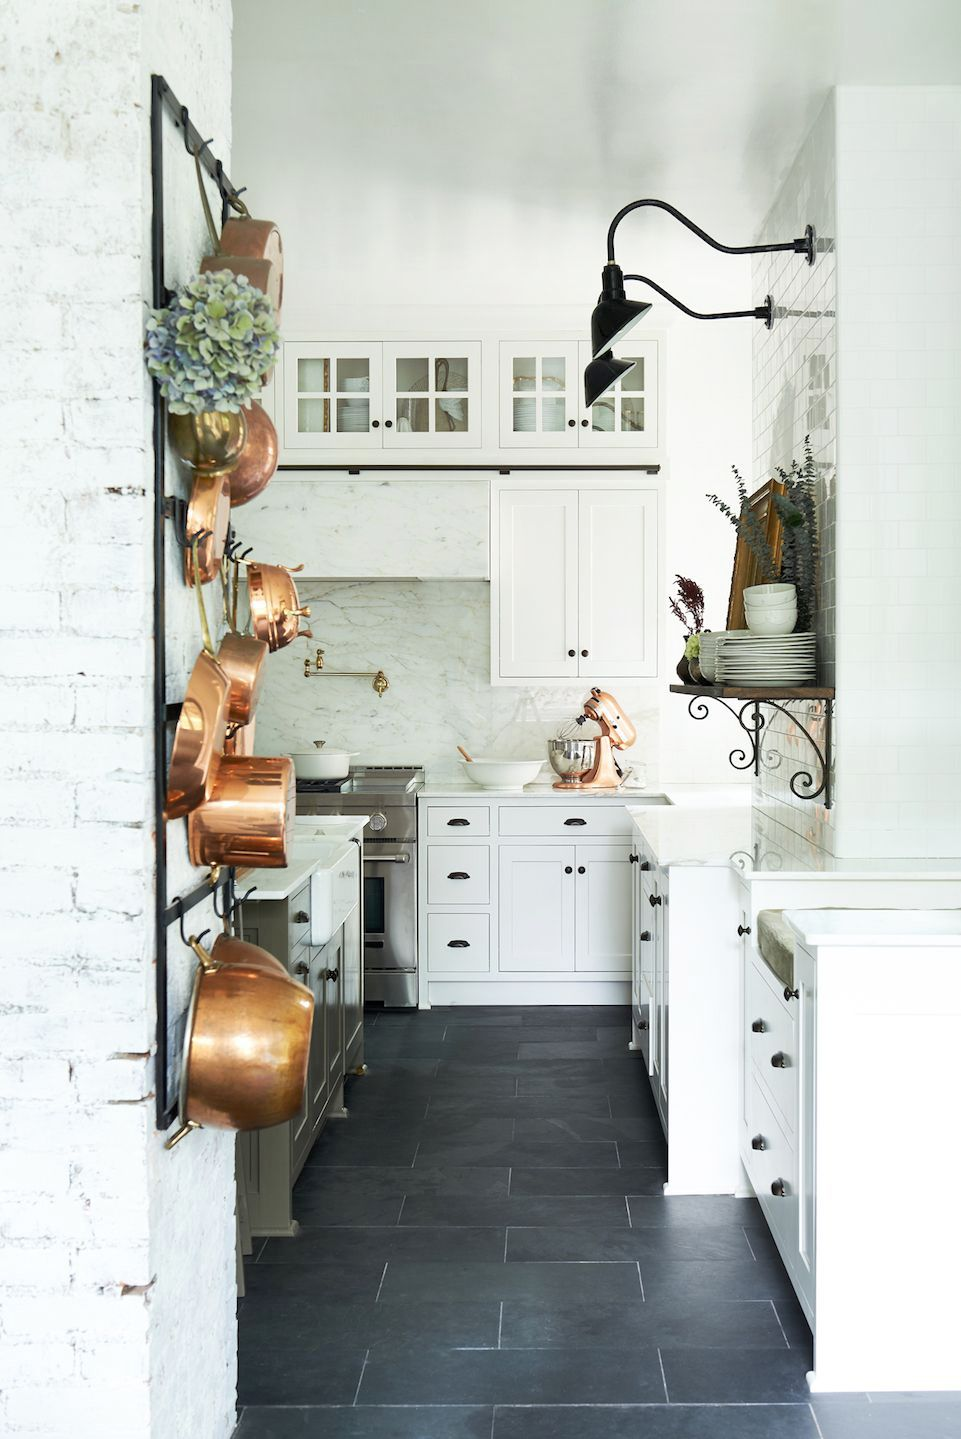 50 Best Small Kitchen Design Ideas , Decor Solutions for